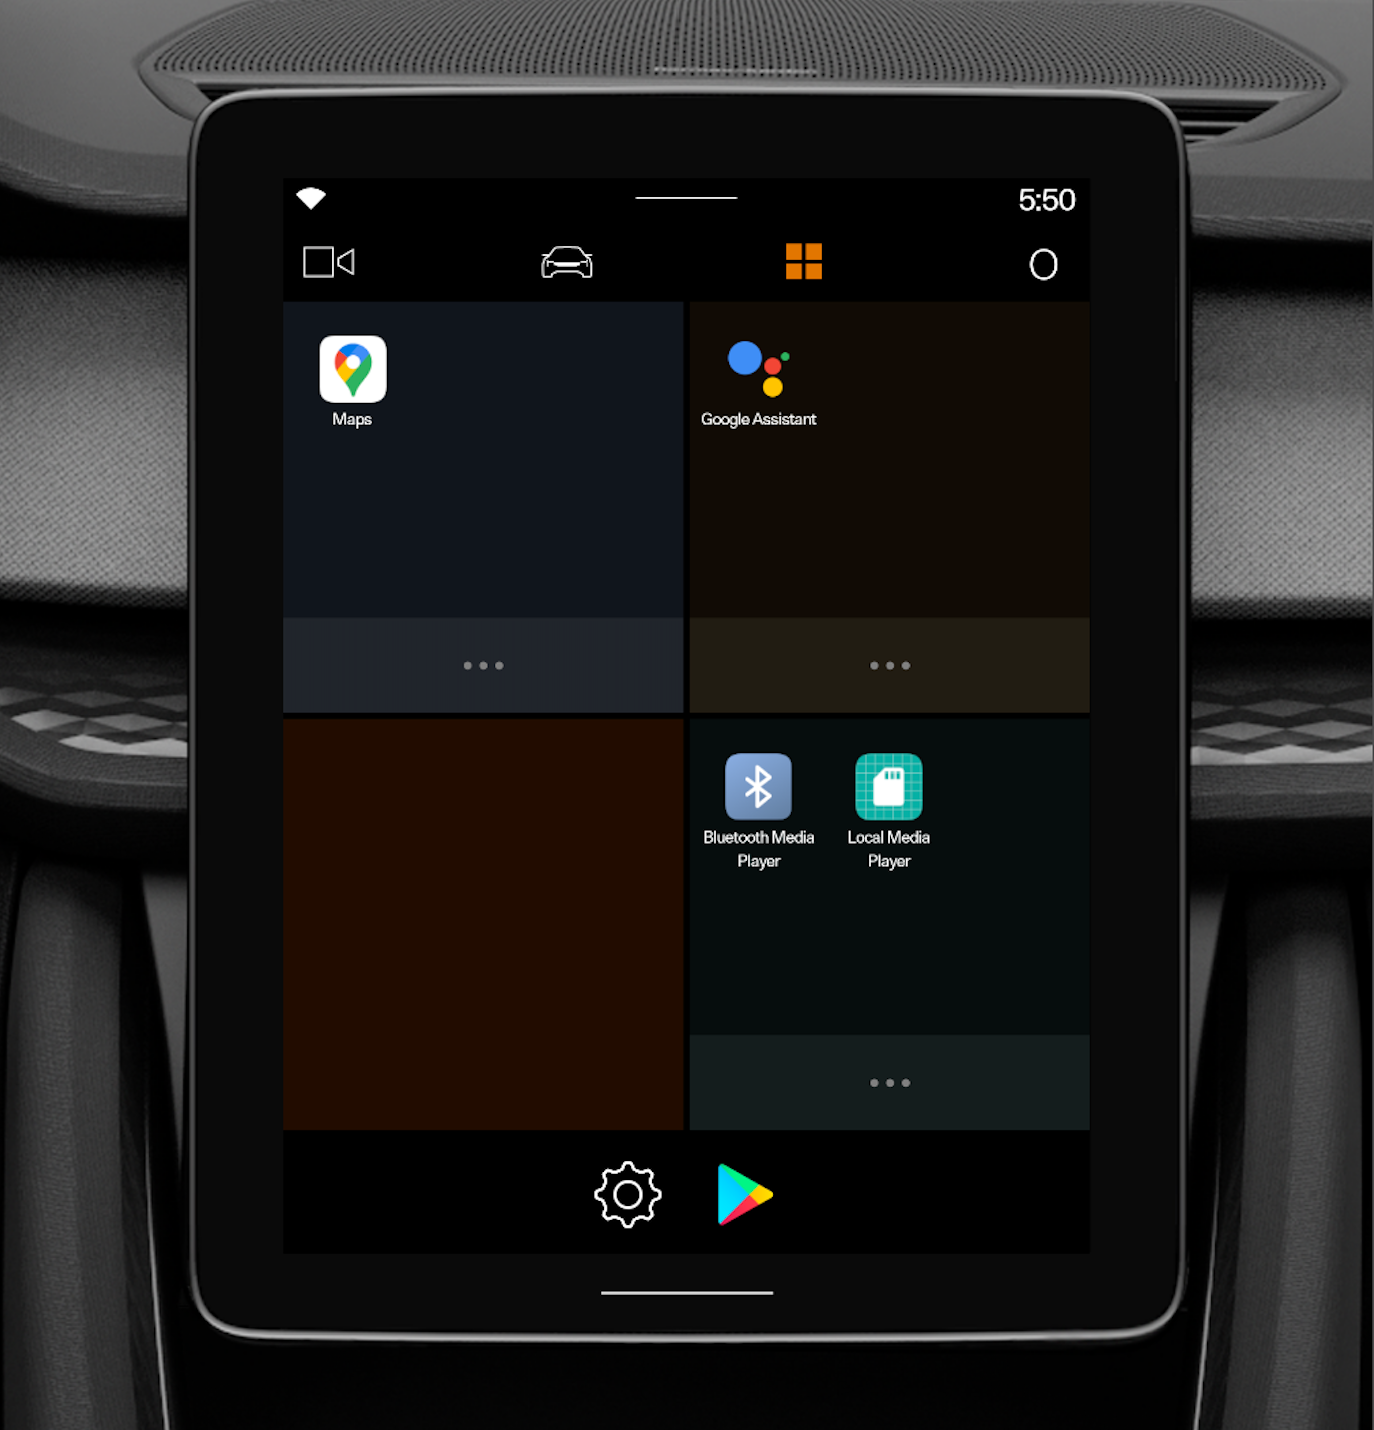 Android Auto image